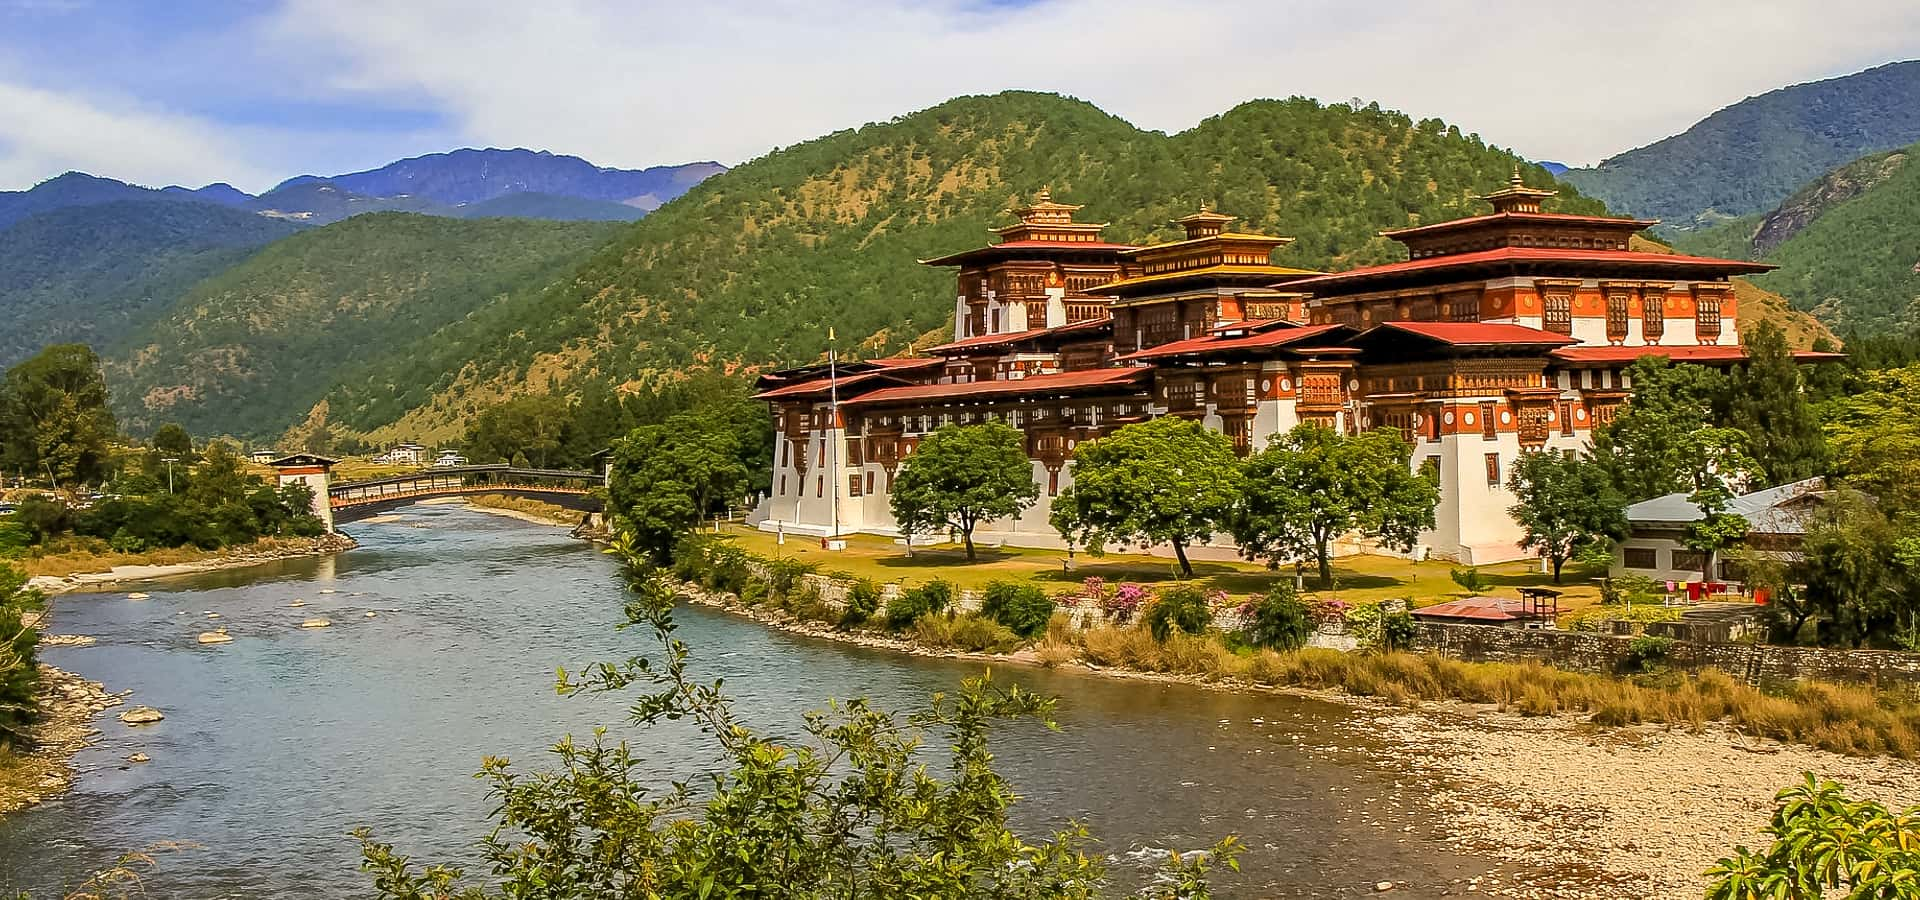 5 night 6 days Bhutan tour